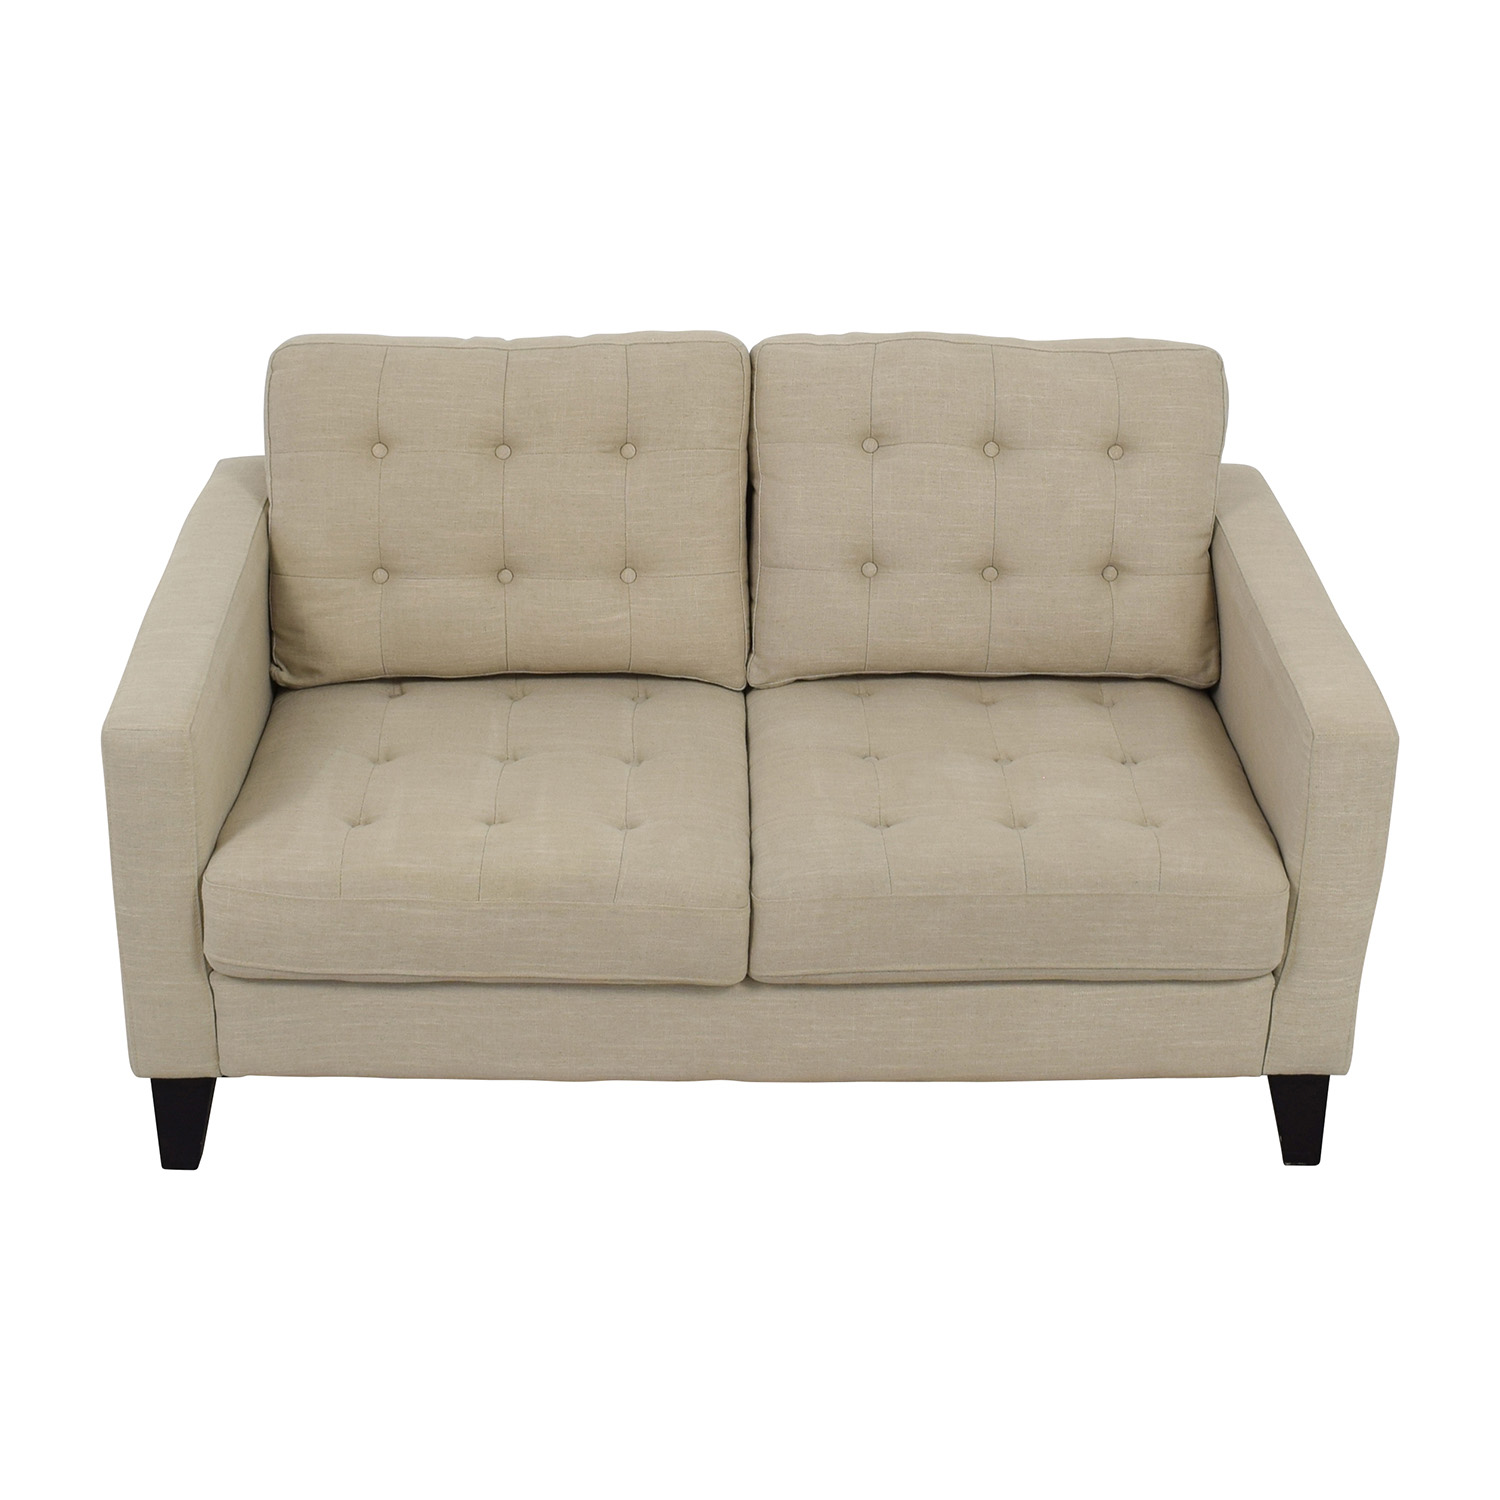 32 Off Pier 1 Imports Pier 1 Imports Putty Tan Tufted Loveseat Sofas